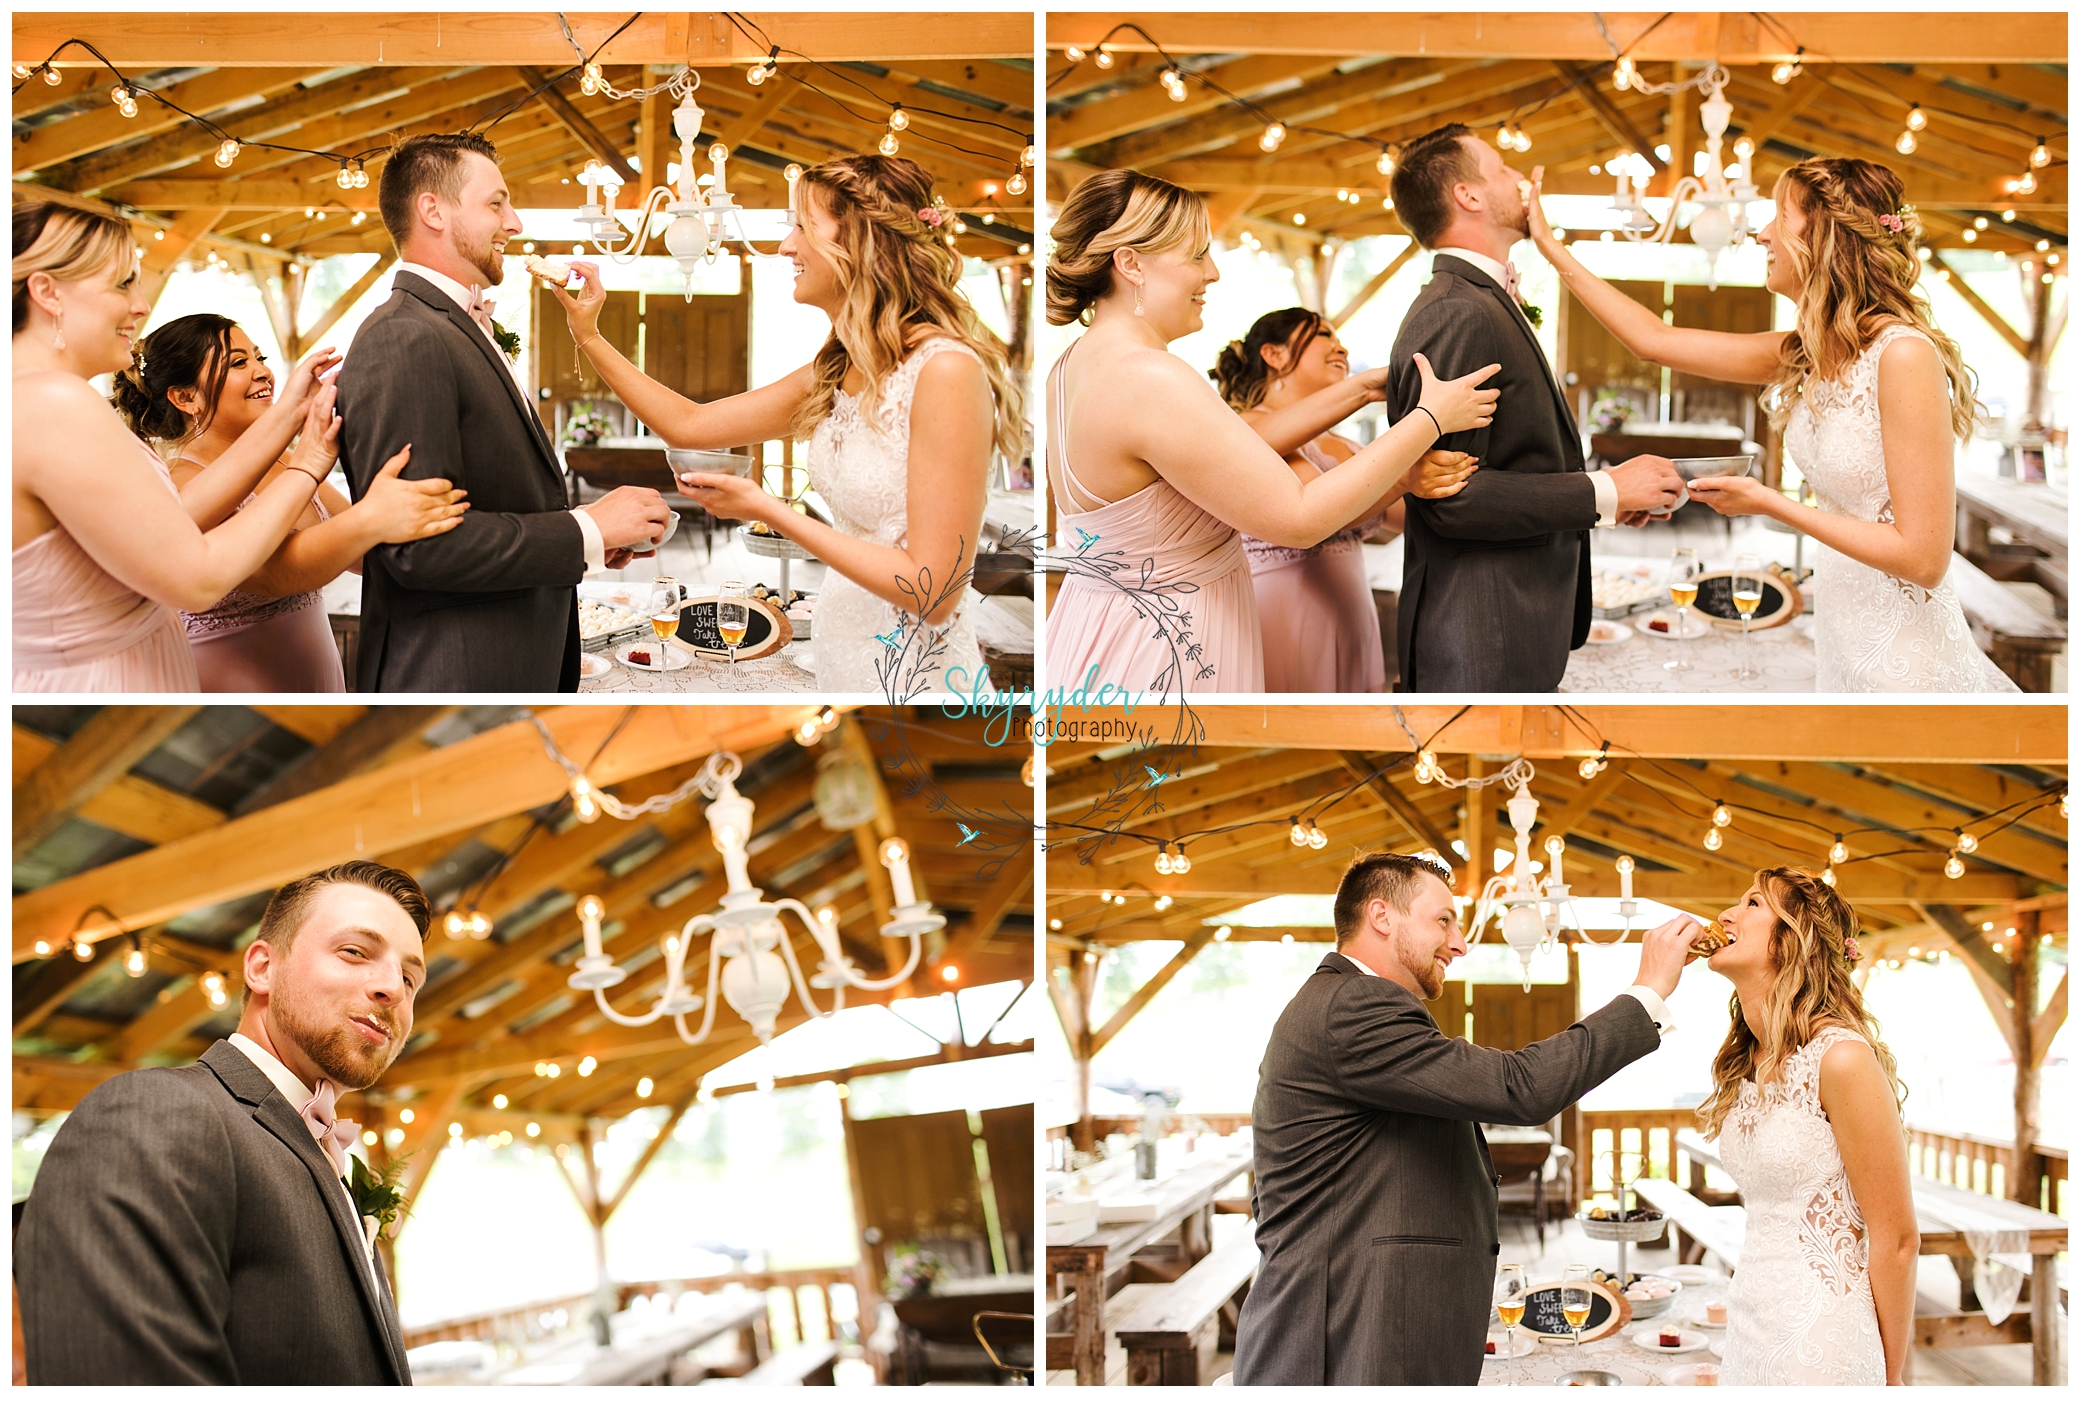 Lauren + Dalton | Blacksburg Wedding Photography